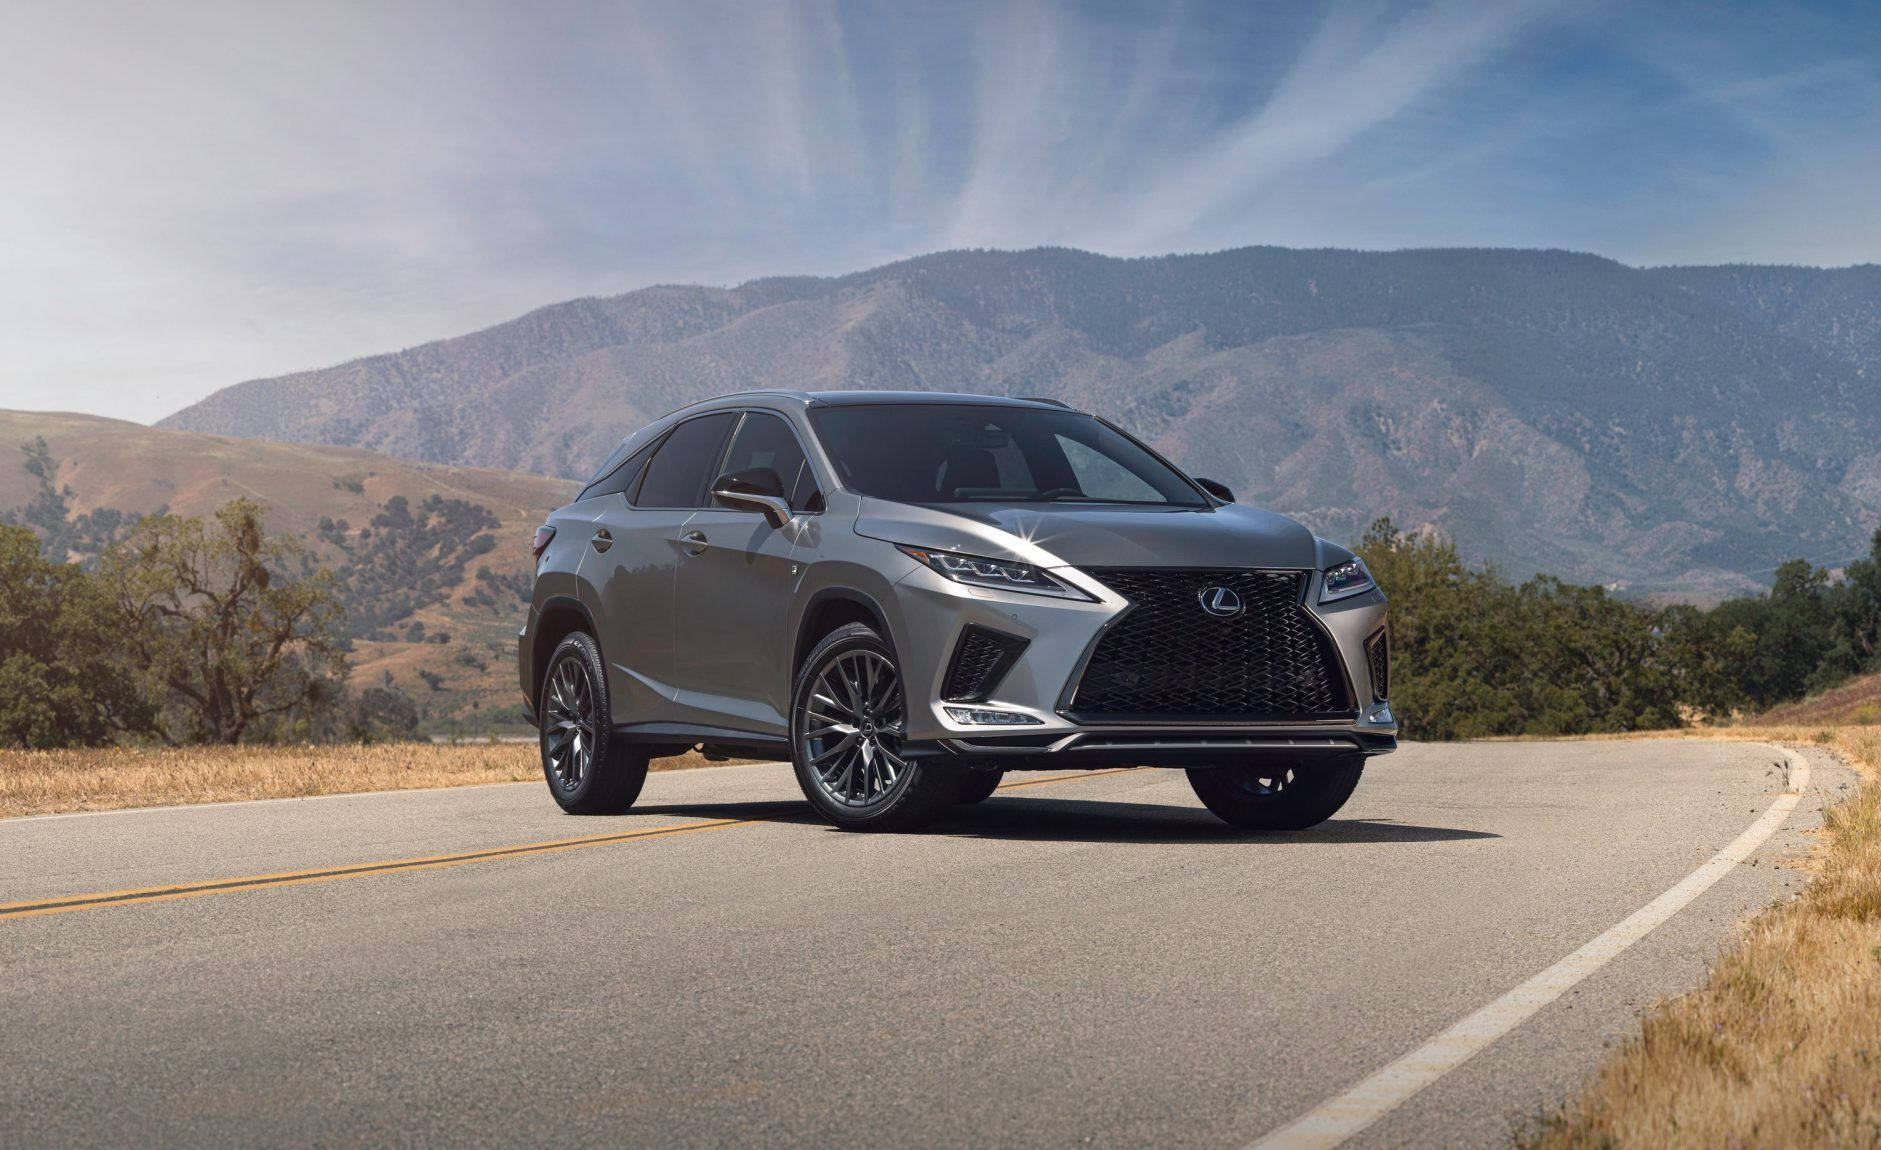 The Leader Of The High End Crossover Sector Is Getting An Upgrade Inside And Out For The 2020 Model Year The New 2020 Lexus Rx And Rxl 3 Row Boost New Lexus